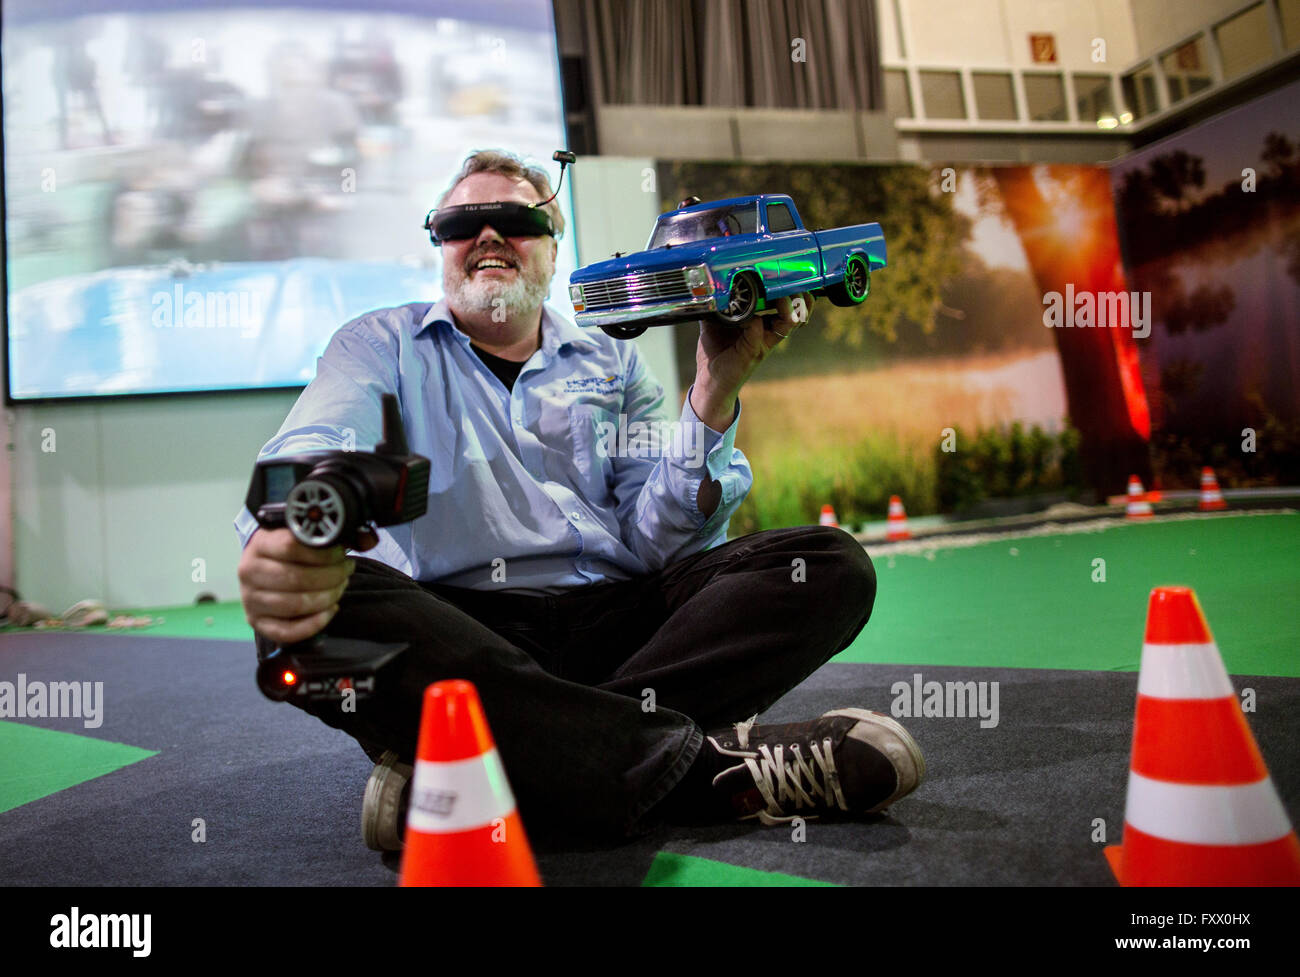 Dortmund, Germany. 19th Apr, 2016. Gernot Steenblock of Horizon Hobby GmbH presenting an FPV ('First Person - Stock Image